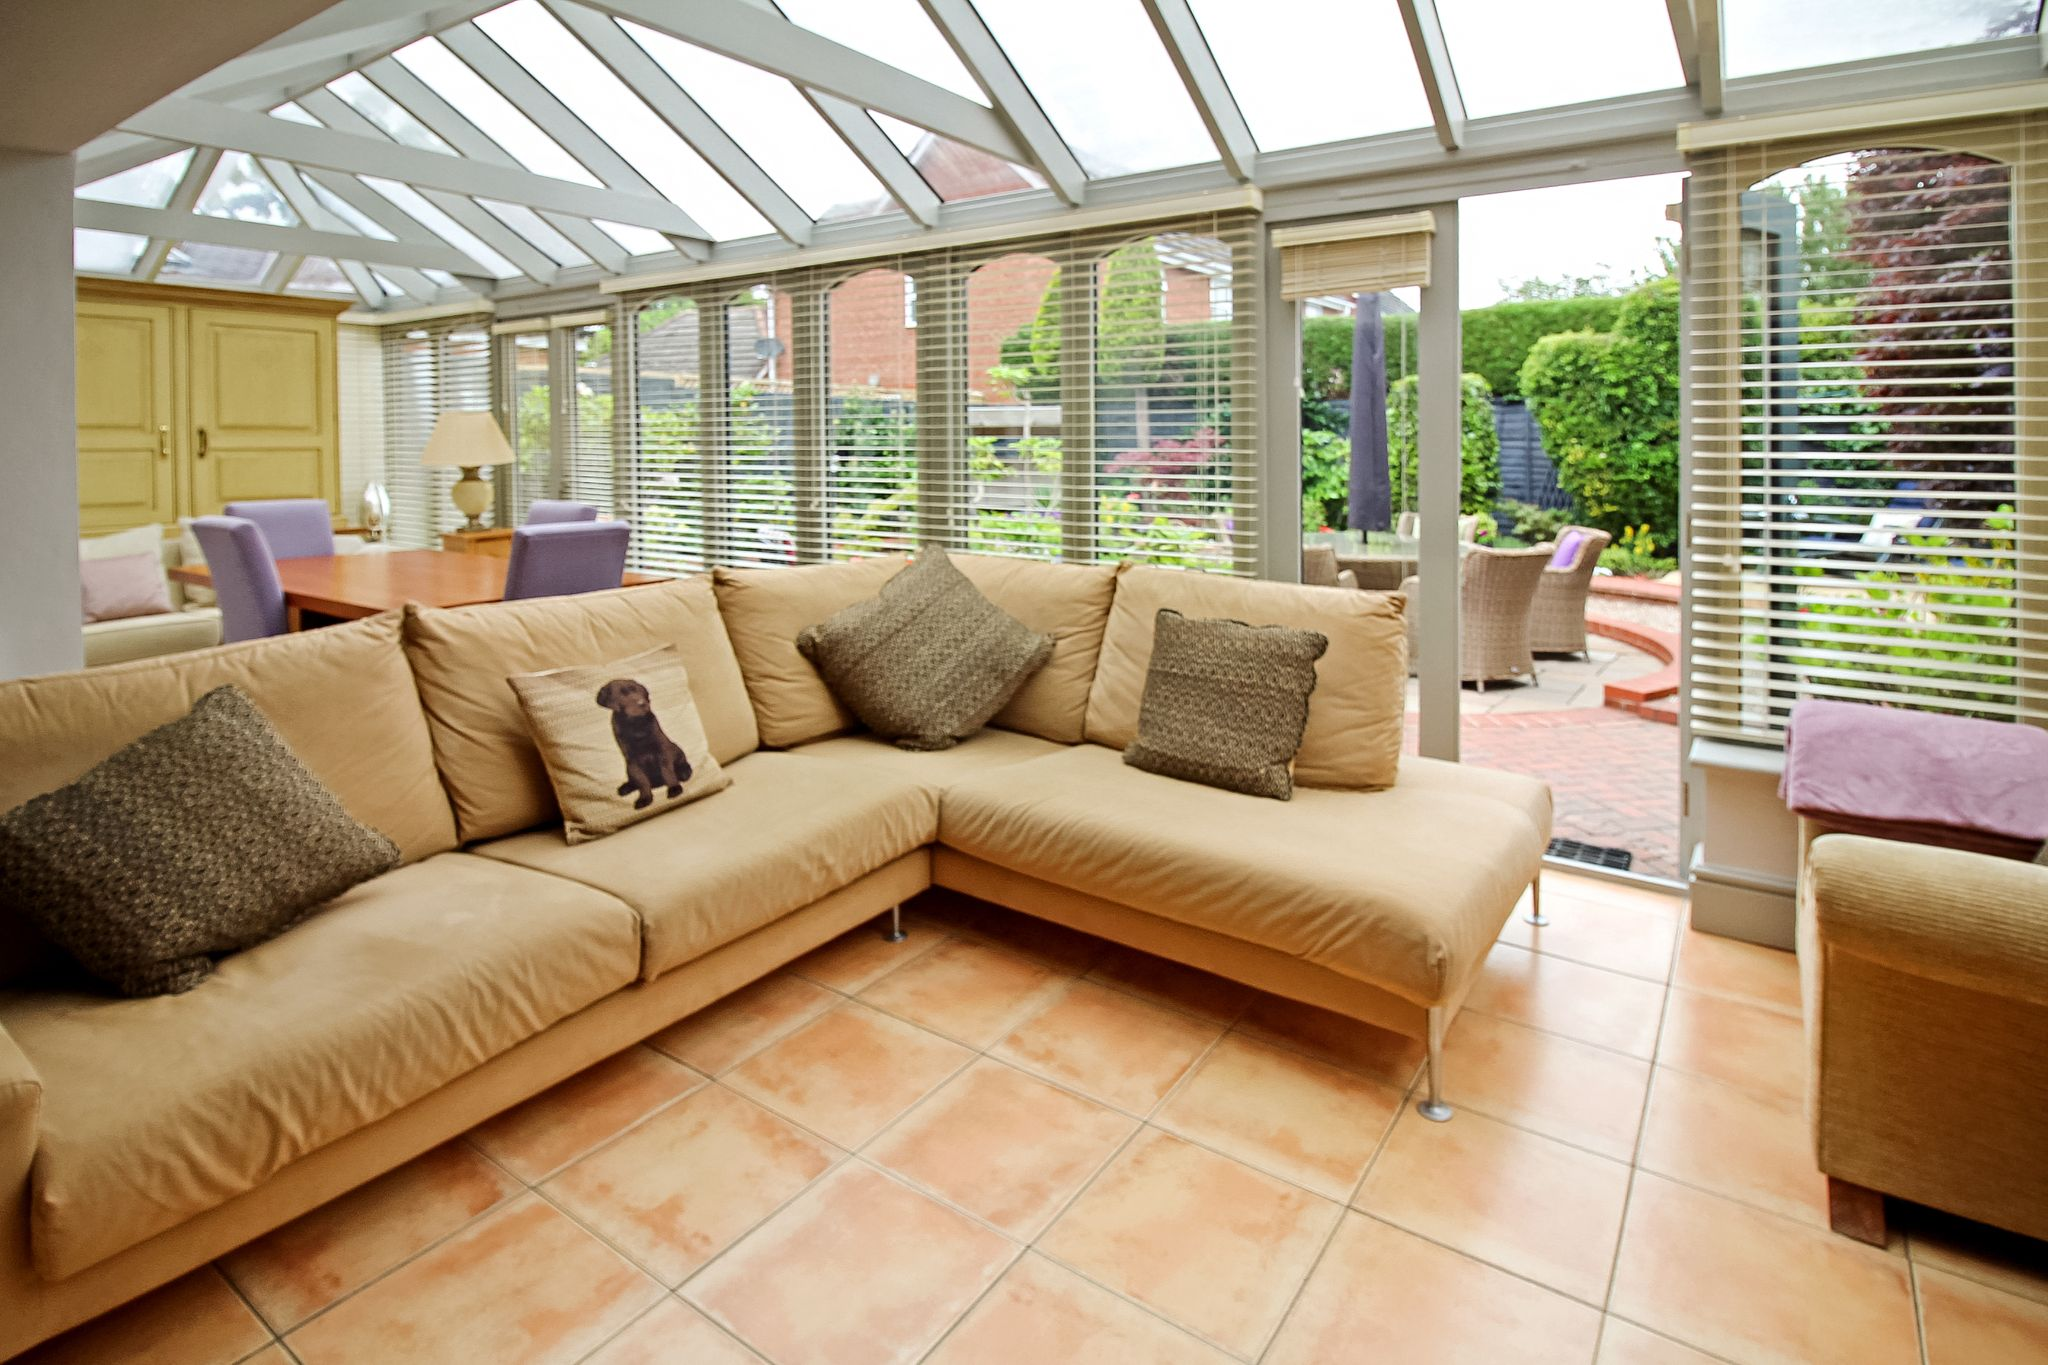 4 bedroom detached house For Sale in Solihull - Photograph 5.